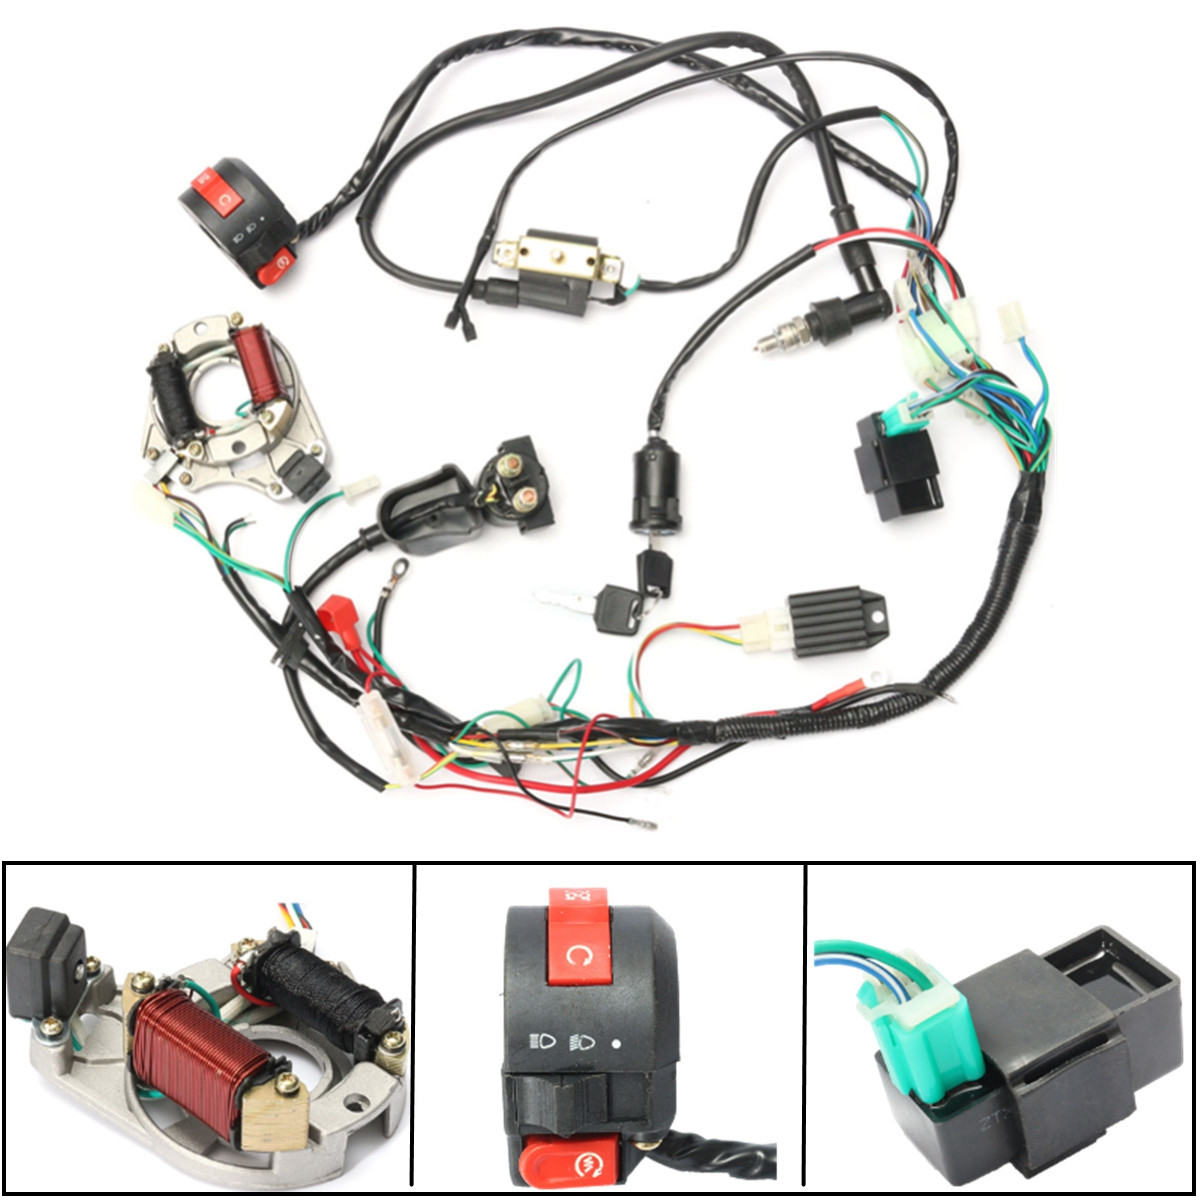 Buy Atv Wiring Harness And Get Free Shipping On Dirt Pit Bike Kill Switch Ignition Coil Cdi Set 110 125